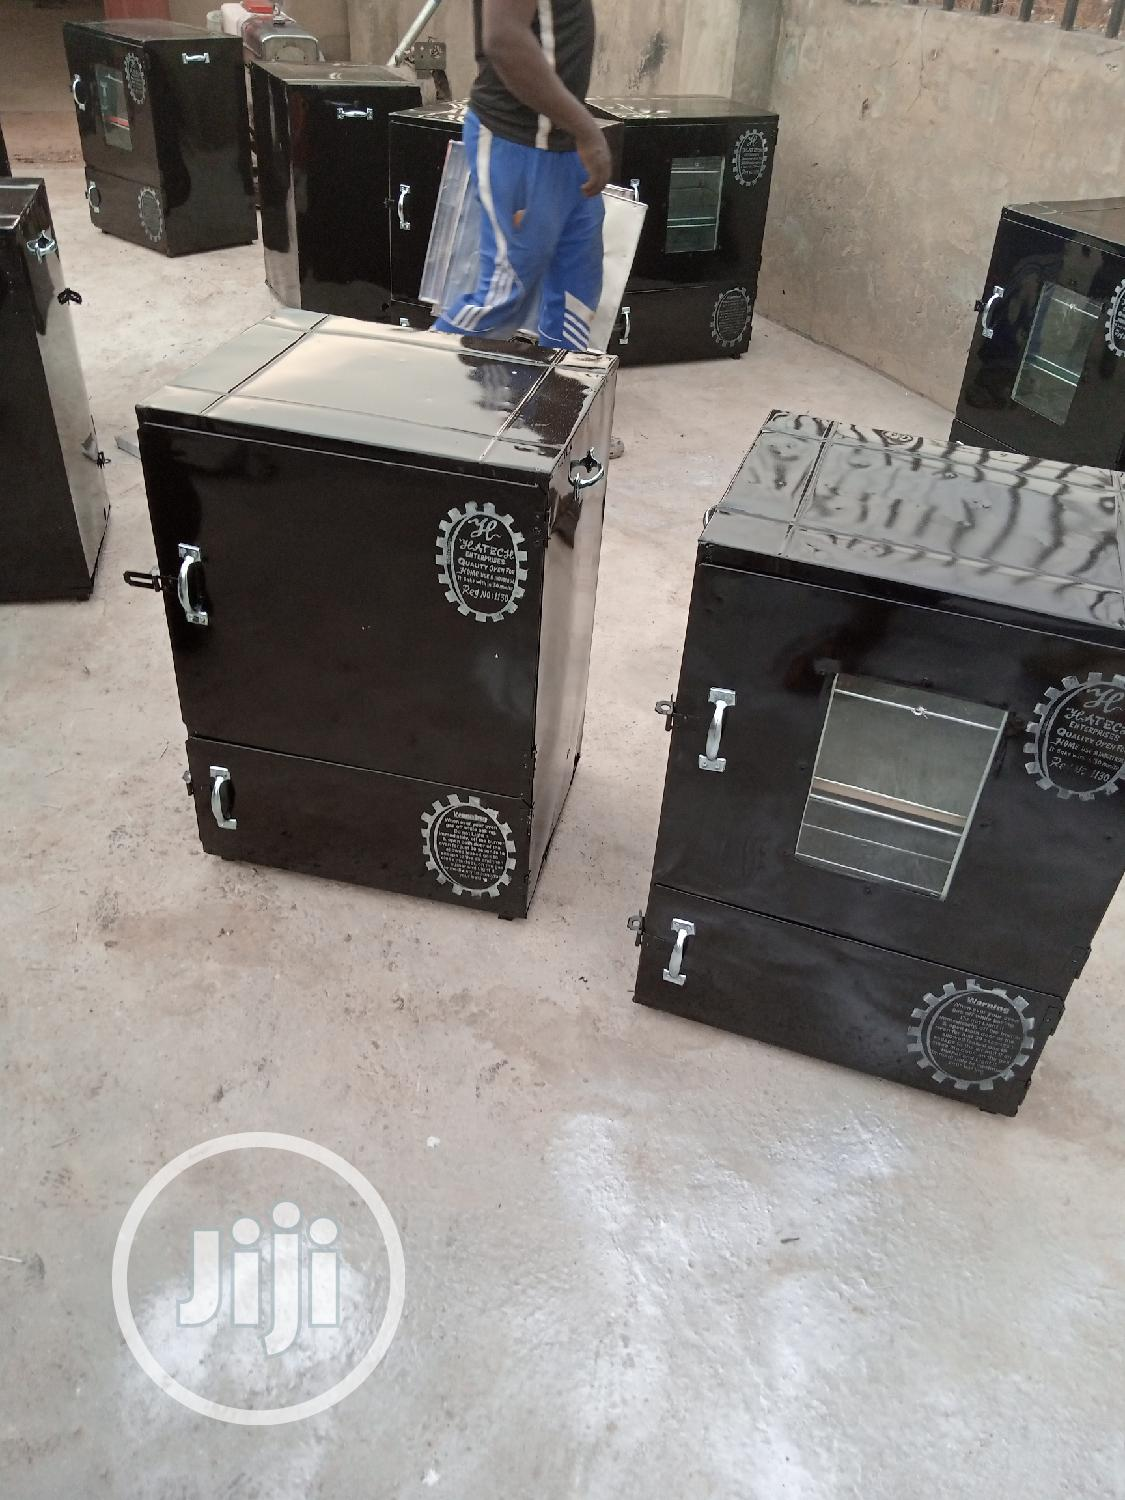 Easytech And Charcoal Oven